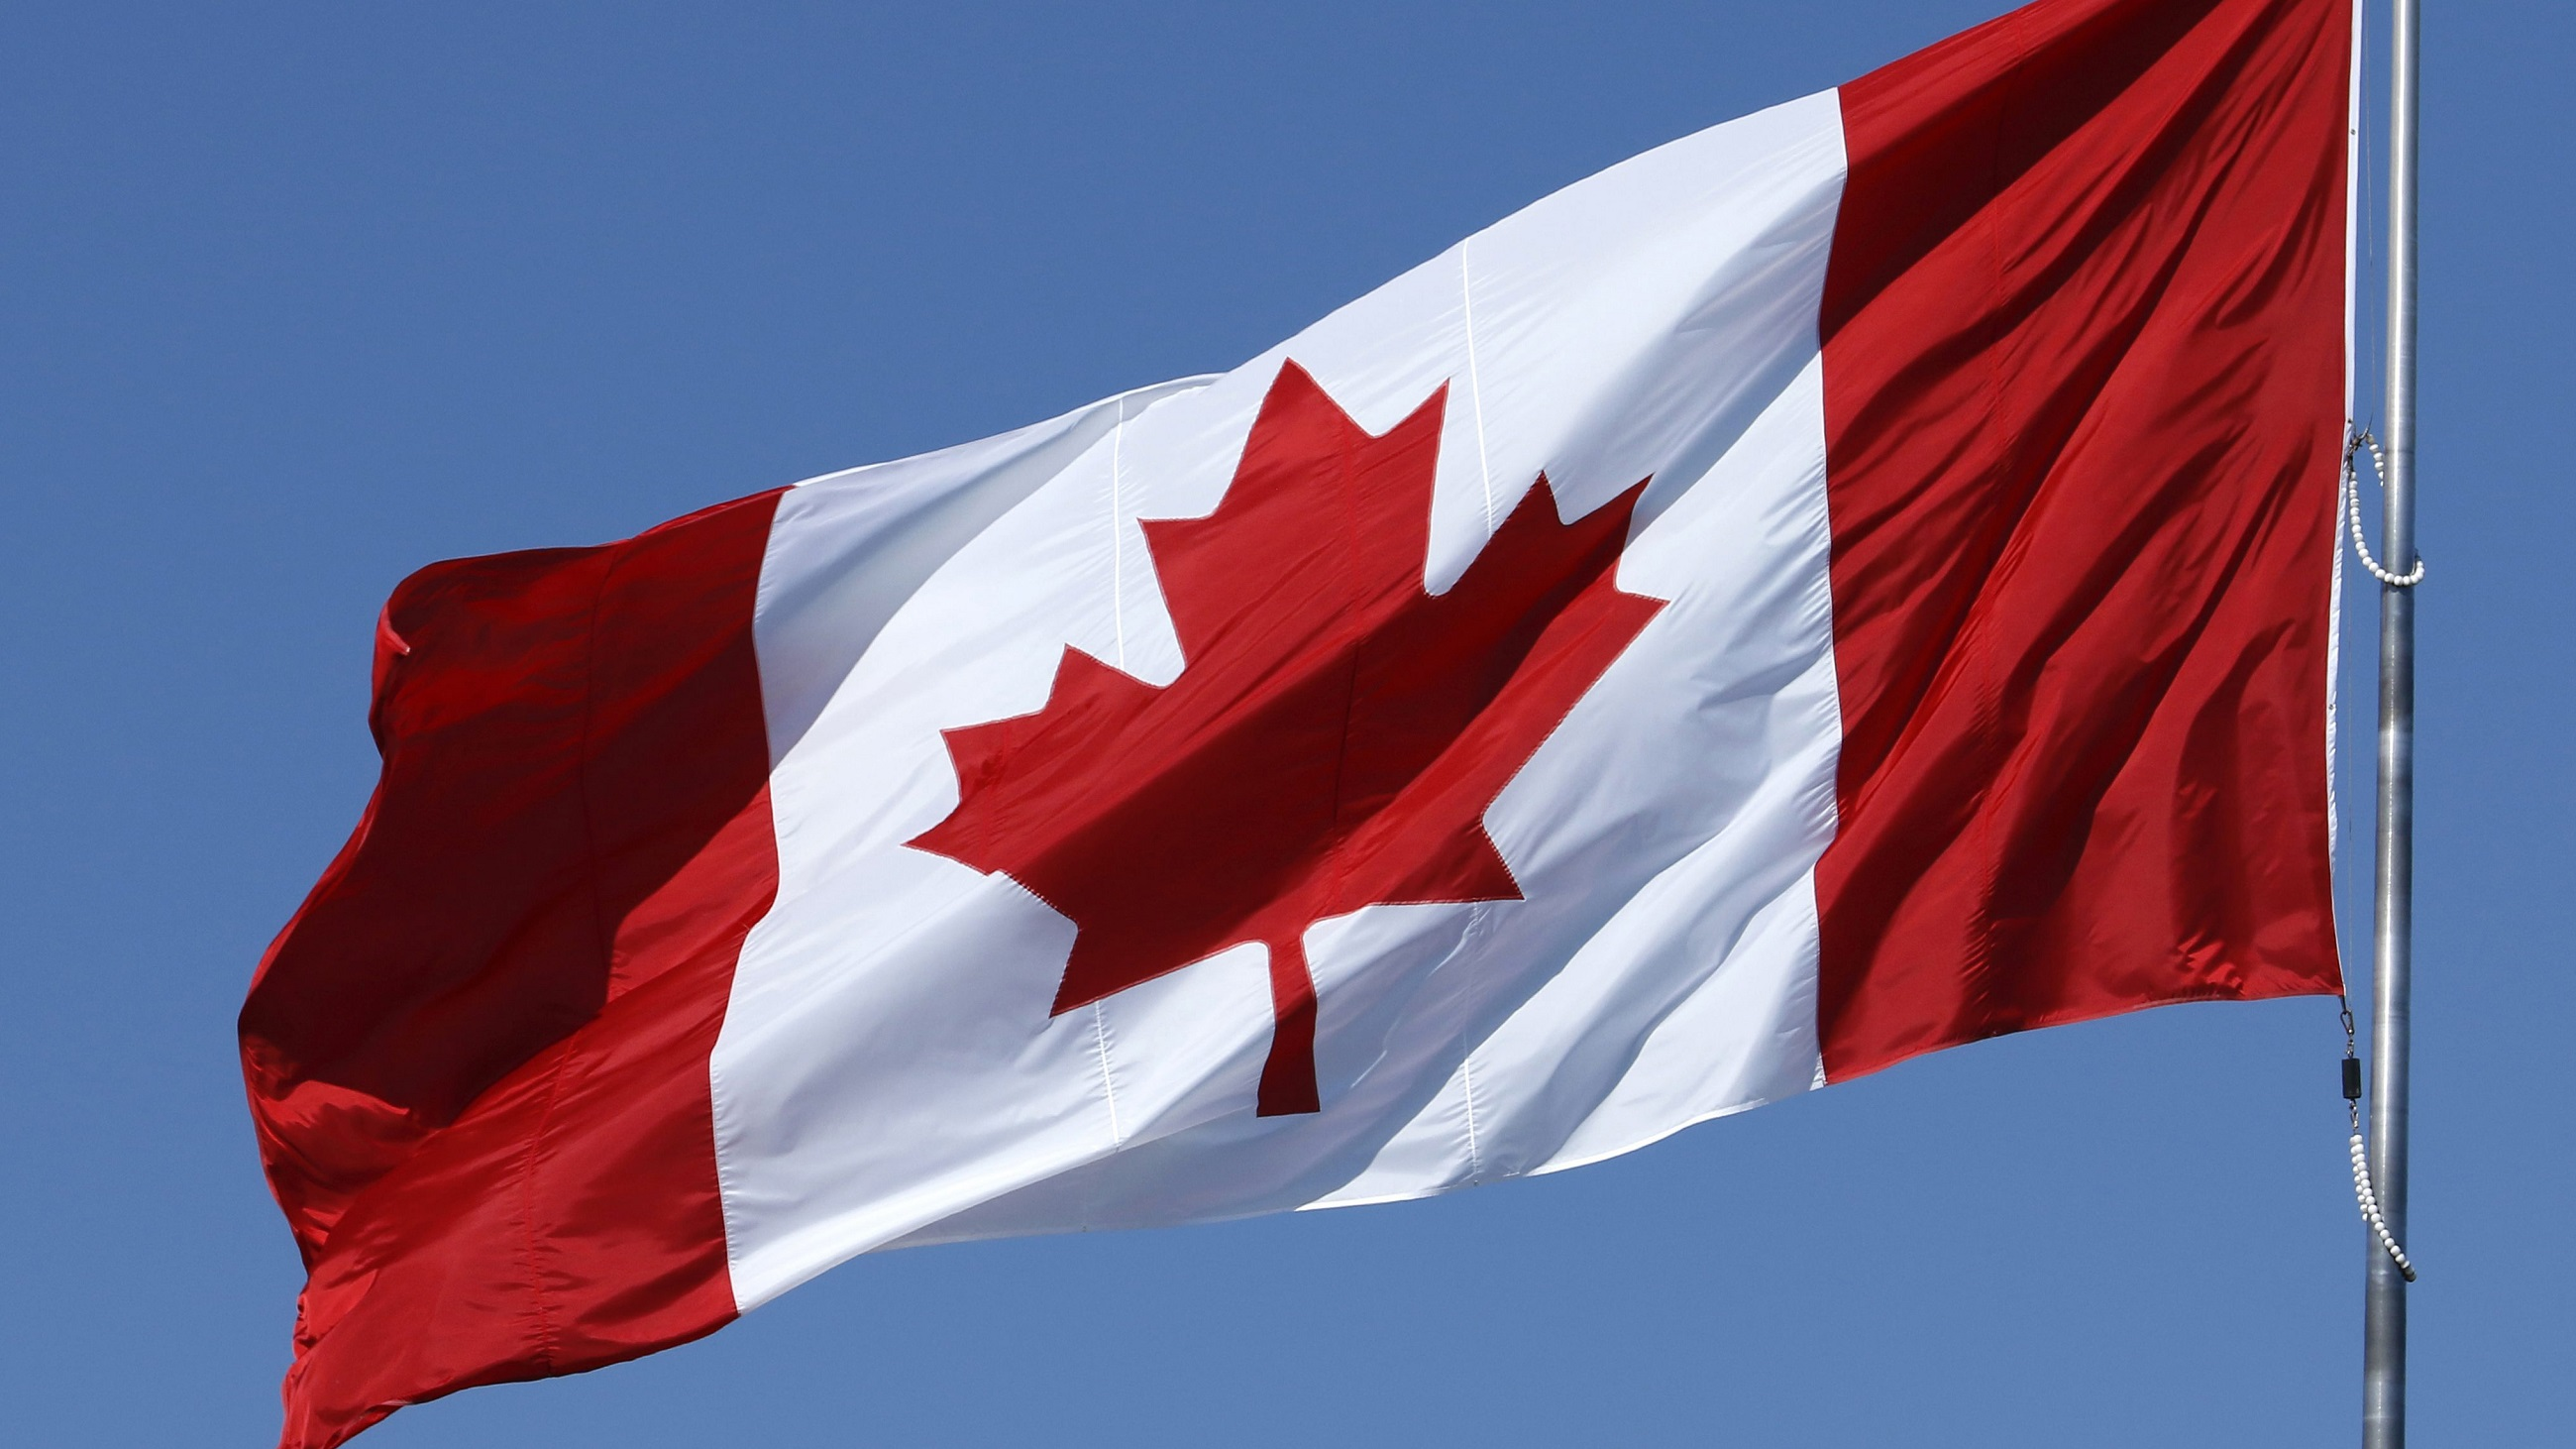 Canada Flag Wallpaper 16